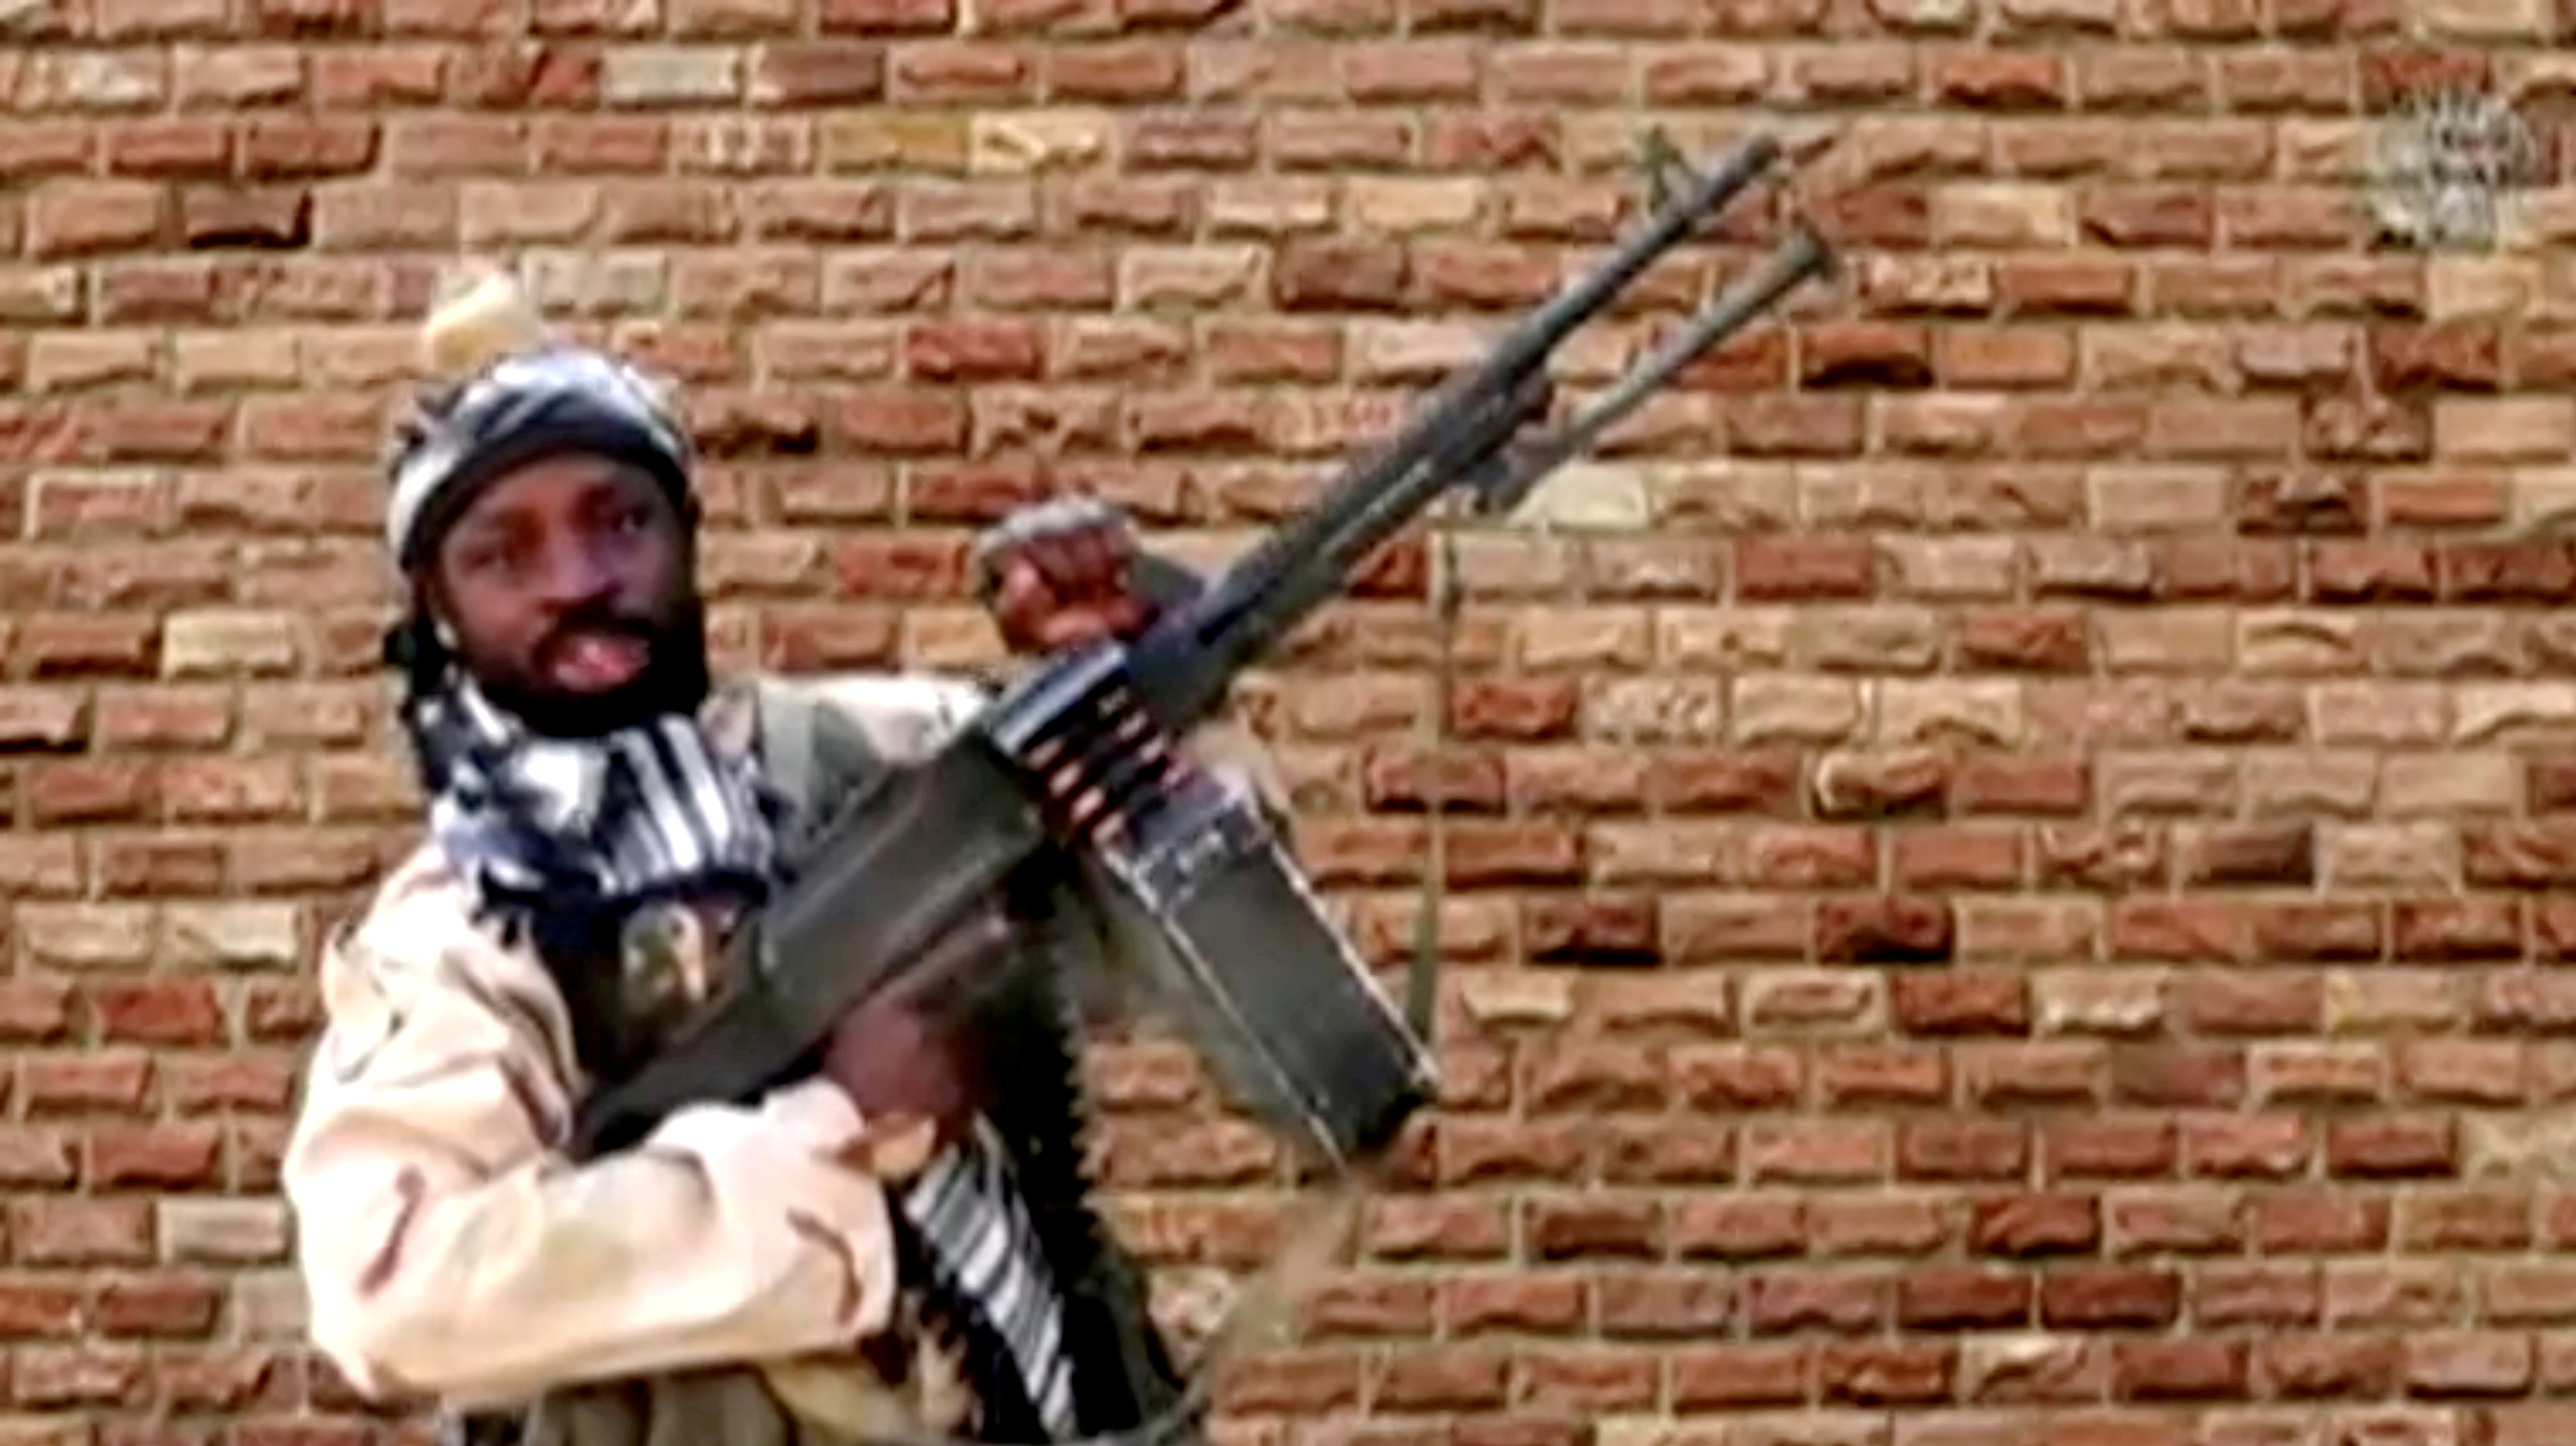 Nigerian Military Says It's Probing Claims of Boko Haram Leader's Death |  Voice of America - English